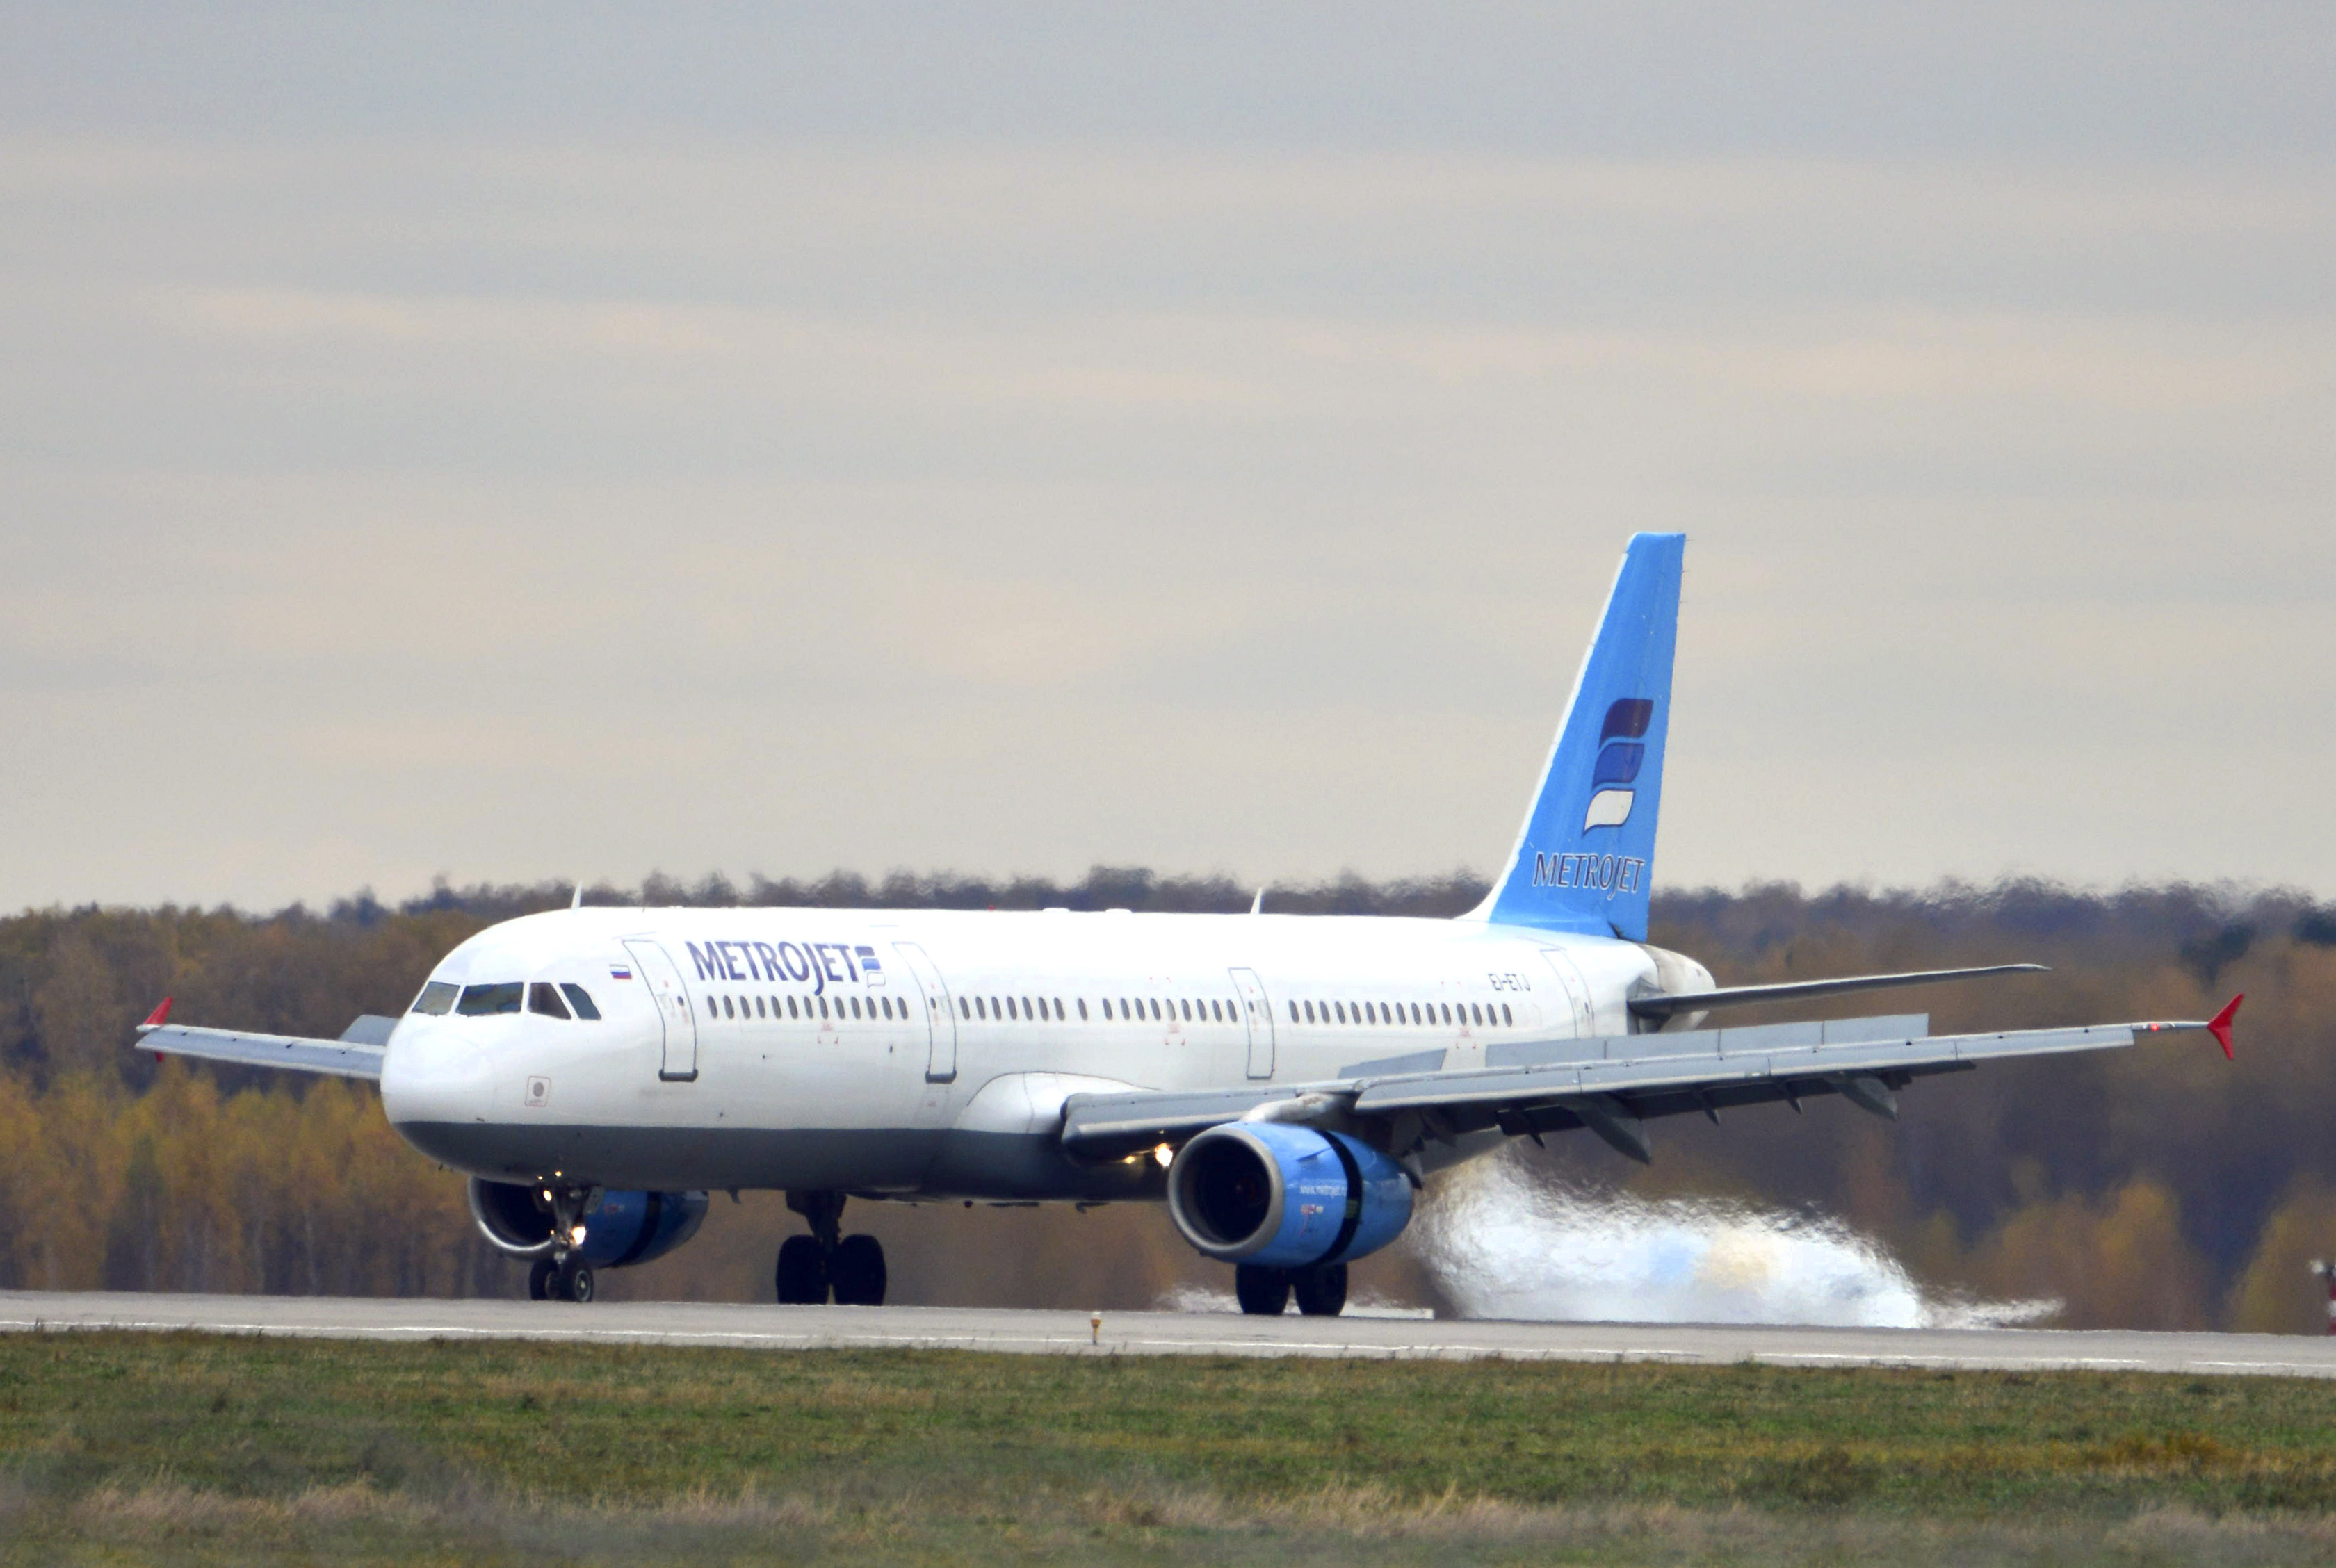 ALTERNATIVE CROP - In this photo taken on Tuesday, Oct. 20, 2015, The Russian airline Kogalymaviau0092s Airbus A321 with a tail number of EI-ETJ on an airstrip of Moscowu0092s Domodedovo international airport, outside Moscow, Russia.  Russia's civil air agency is expected to have a news conference shortly to talk about the Russian Metrojet passenger plane EI-ETJ, that Egyptian authorities say has crashed in Egypt's Sinai peninsula. (AP Photo/Tatiana Belyakova)